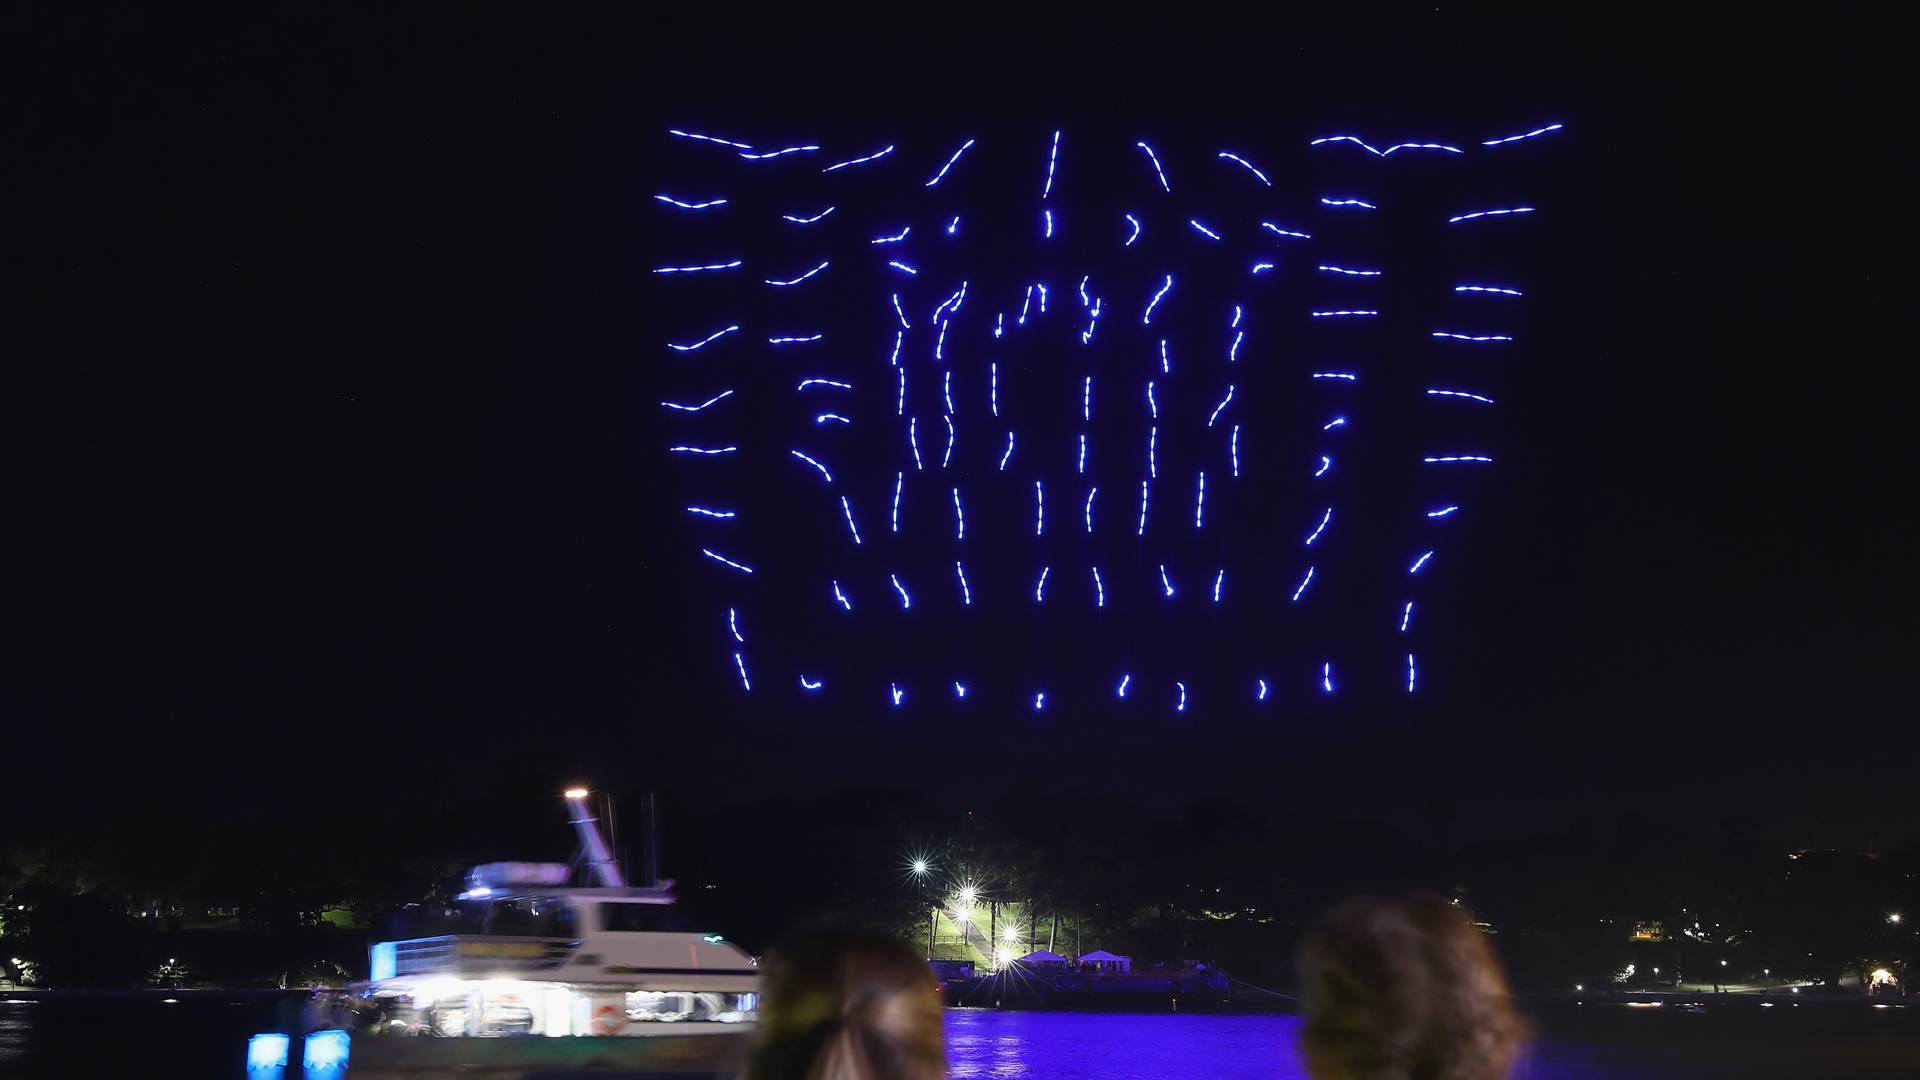 A hundred illuminated drones perform a choreographed routine over Sydney Harbour on June 8, 2016 in Sydney, Australia. (Credit: Cameron Spencer/Getty Images)